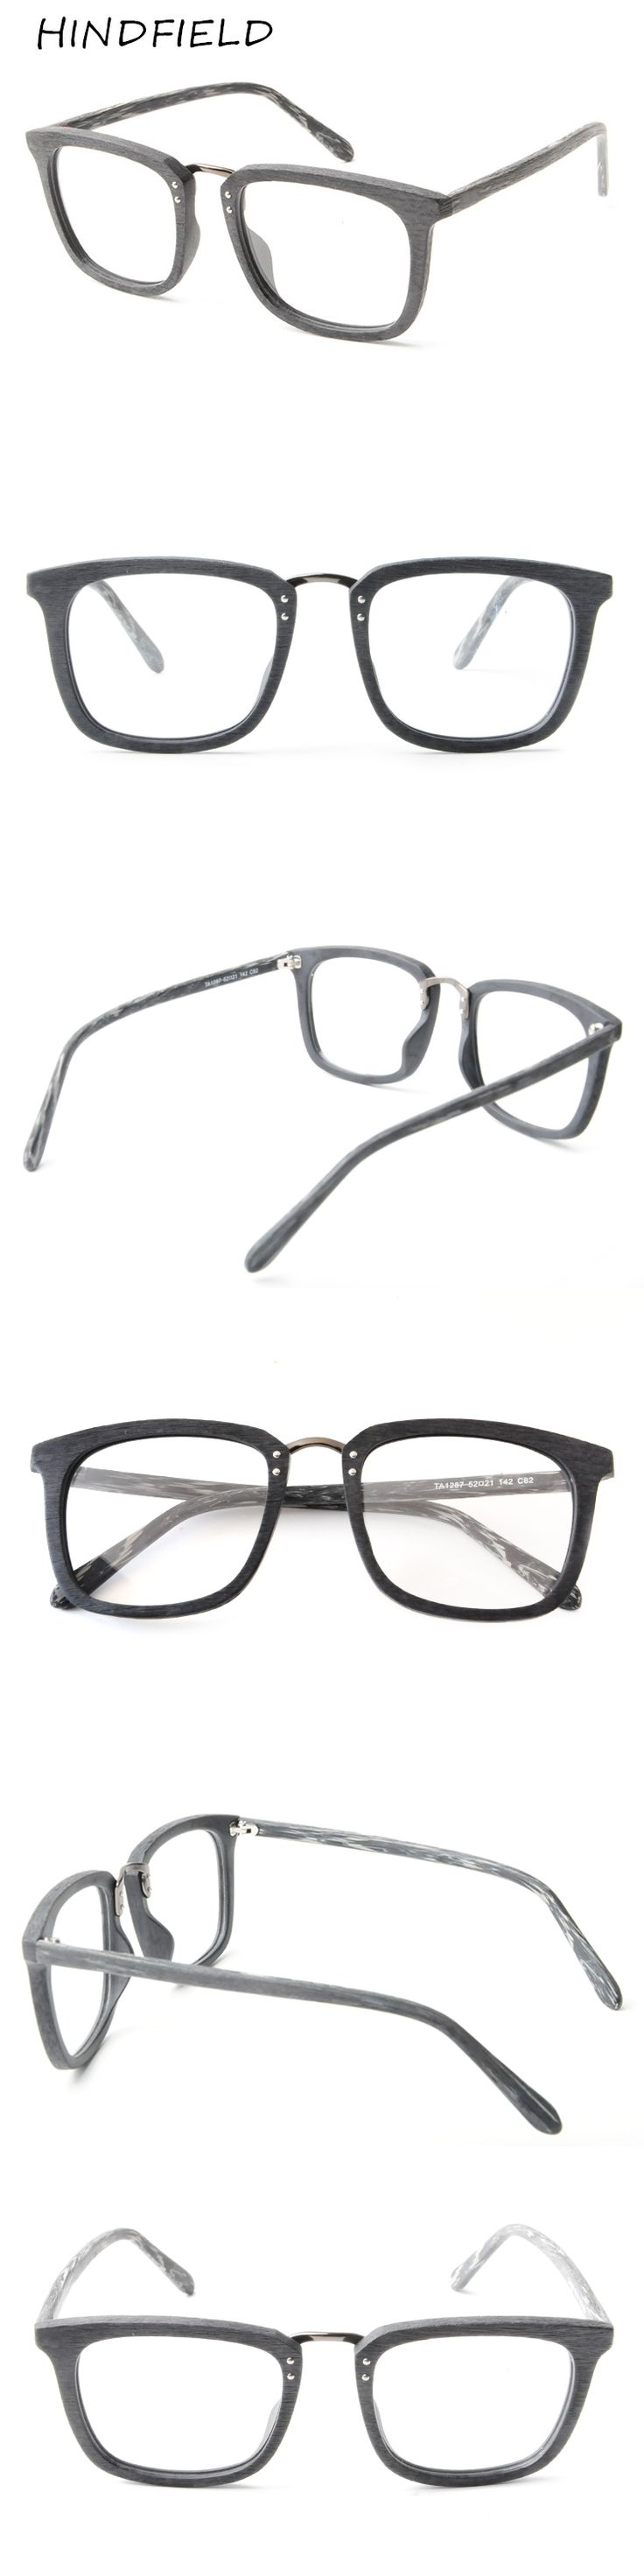 HINDFIELD 2017 New Eyeglasses Men Women Suqare Brand Designer Eyeglasses Frame Optical Computer Eye Glasses Frame oculos de grau